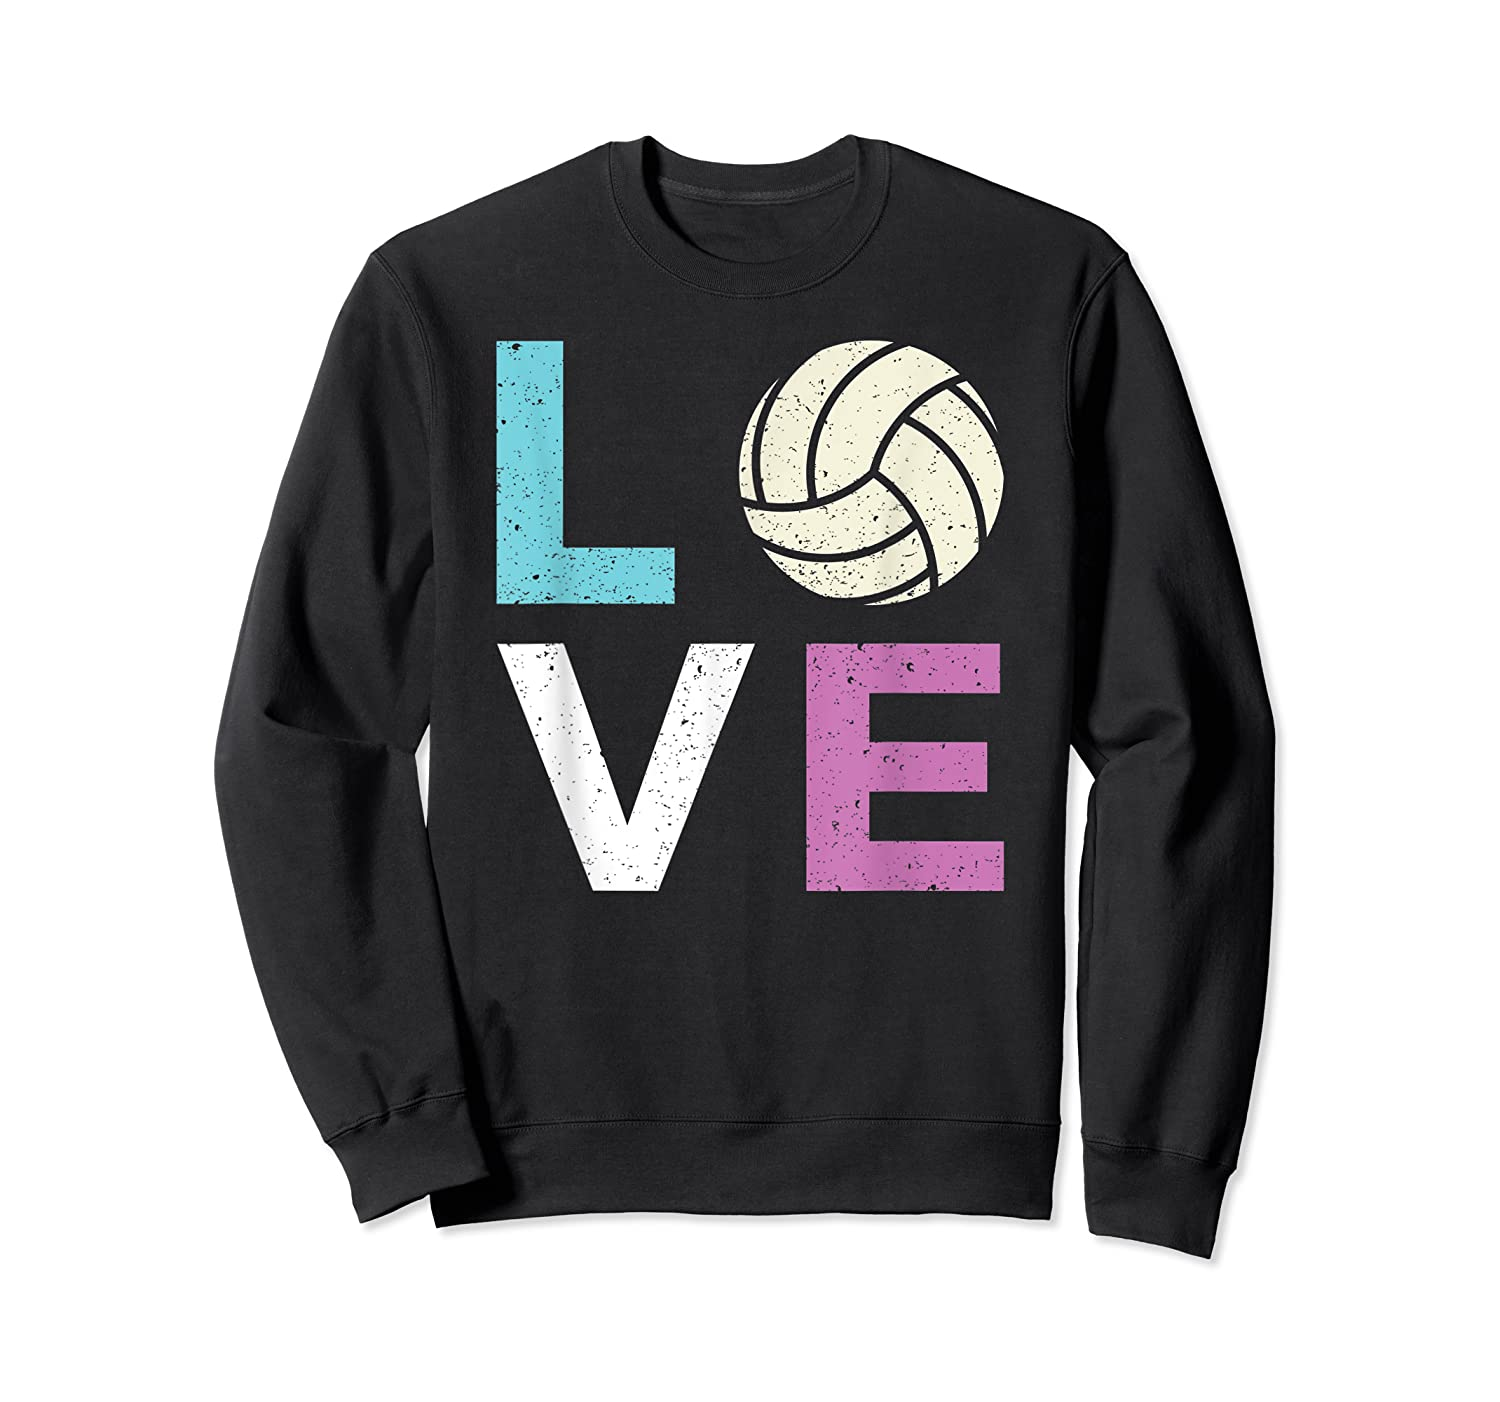 And A Volleyball Shirts Crewneck Sweater